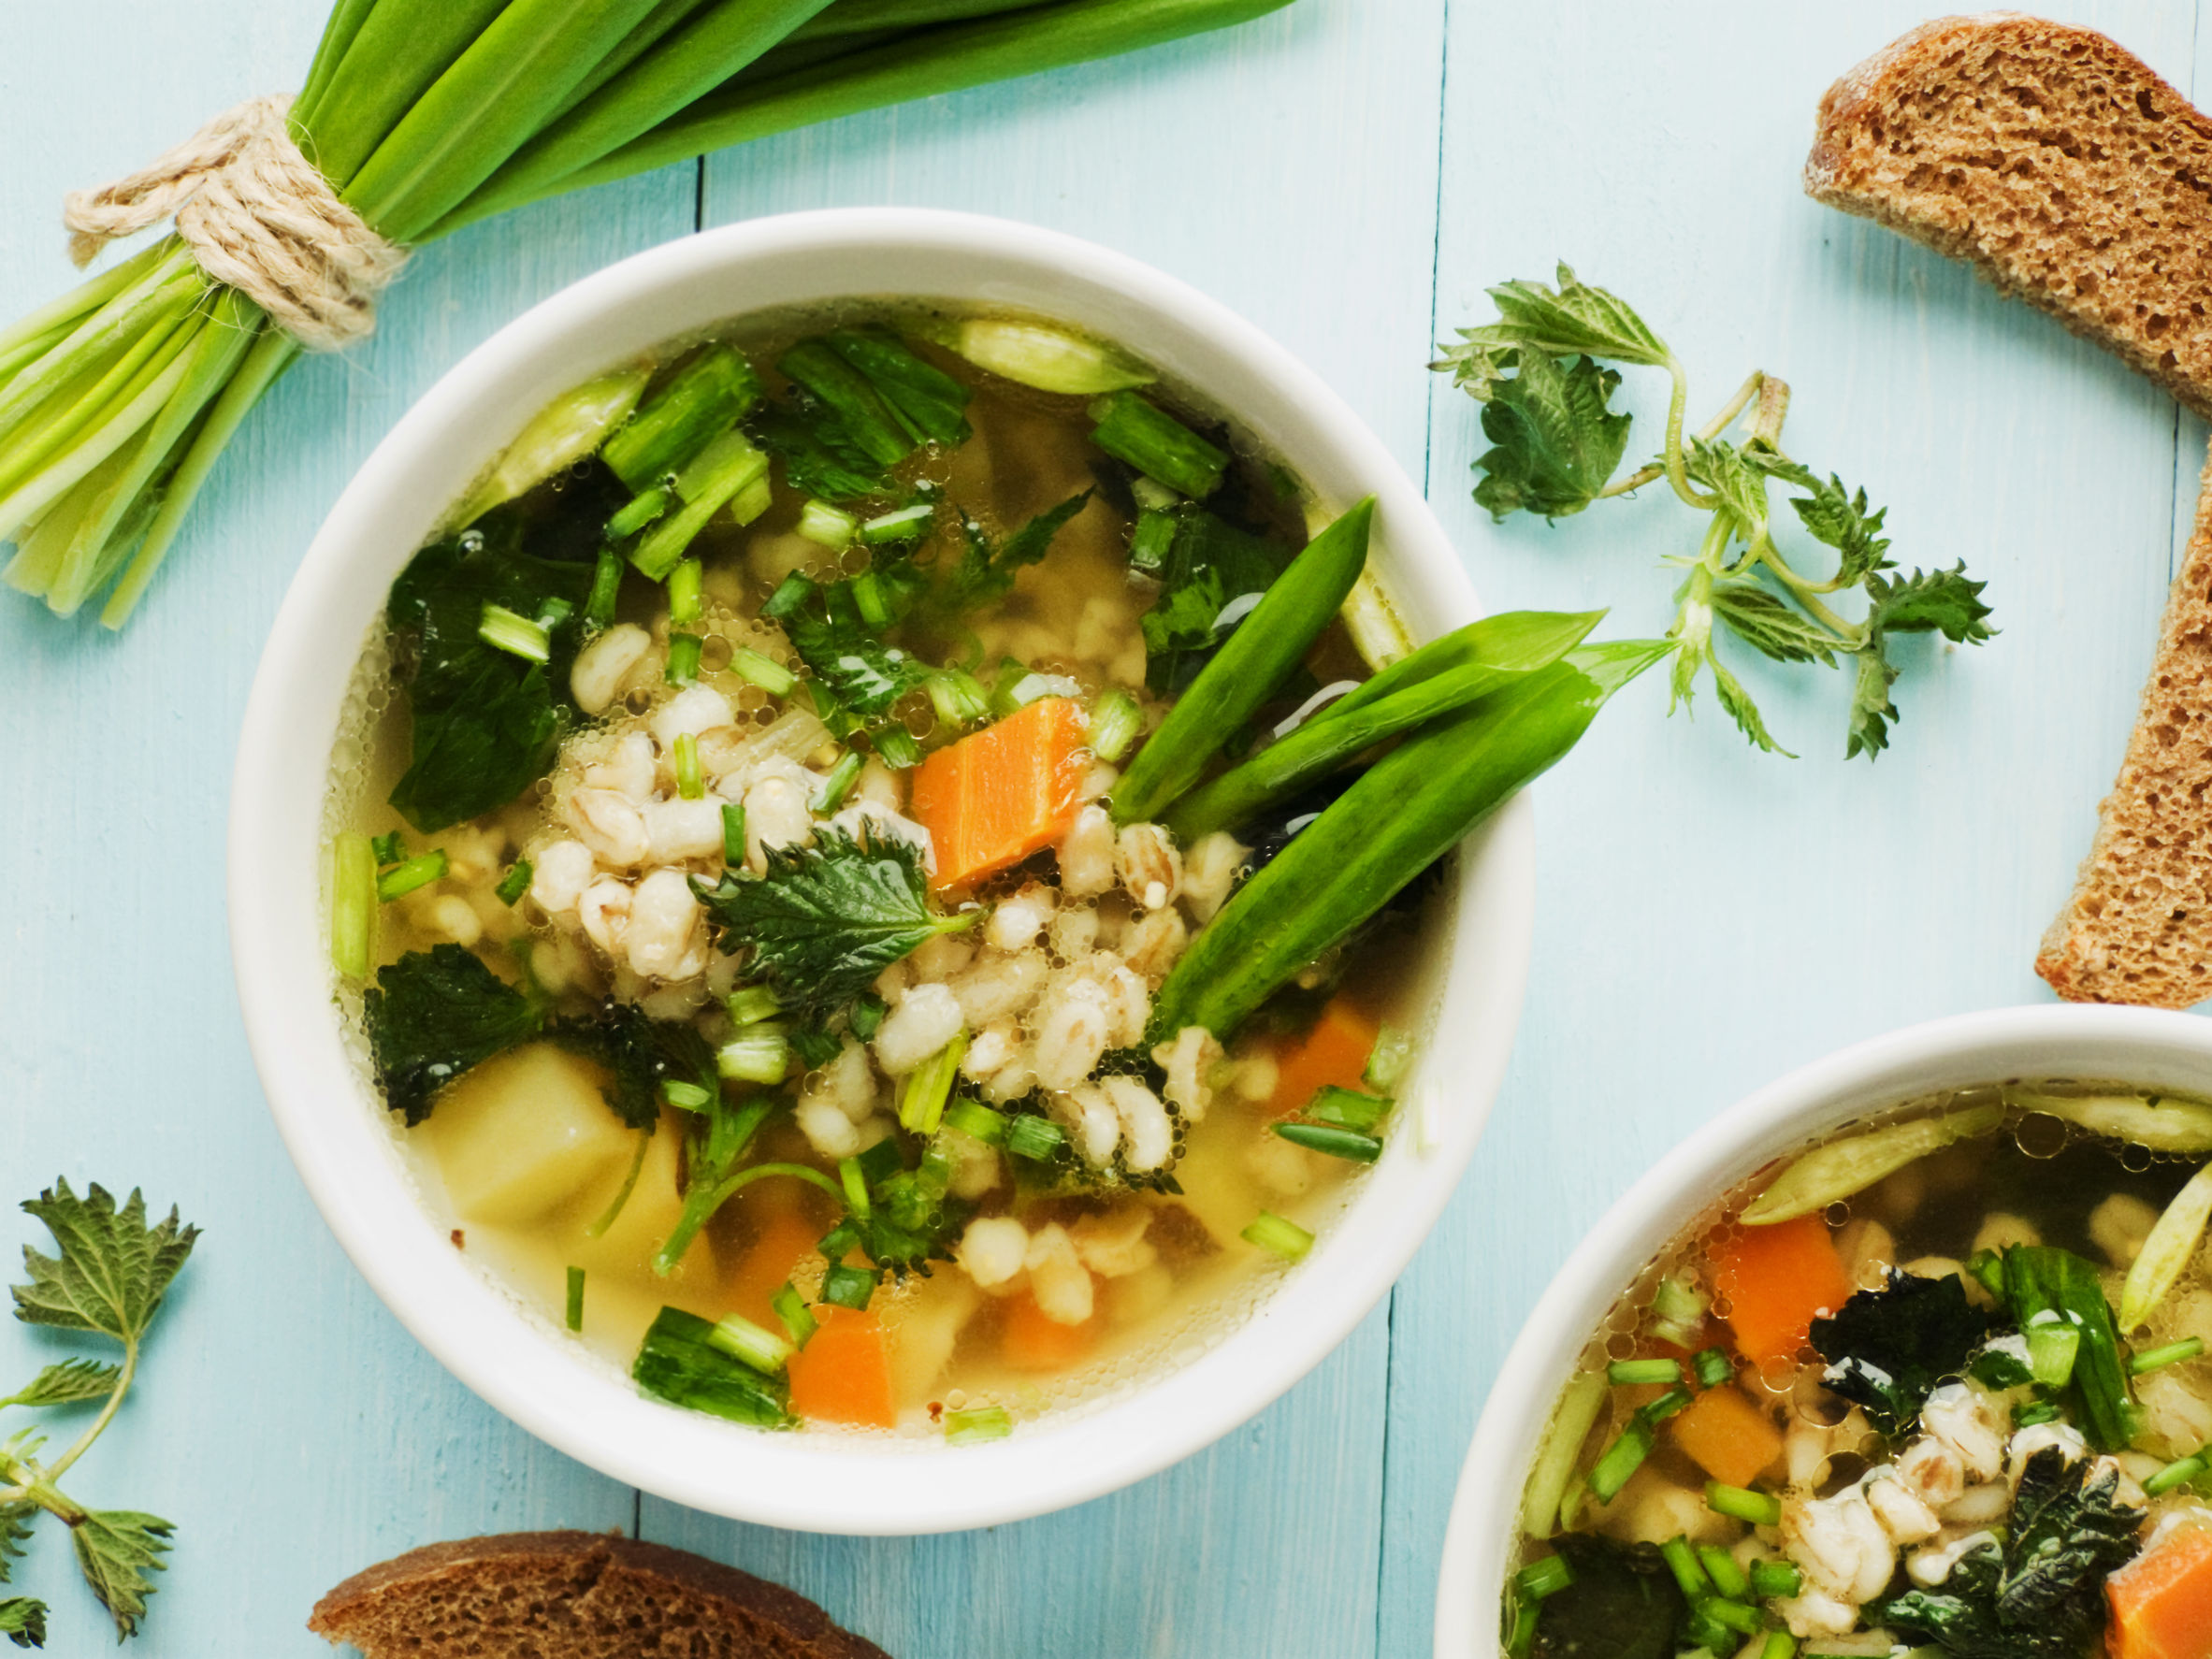 Vegetable Congee - support the immune system.  https://www.info-on-high-blood-pressure.com/vegetable-congee.html